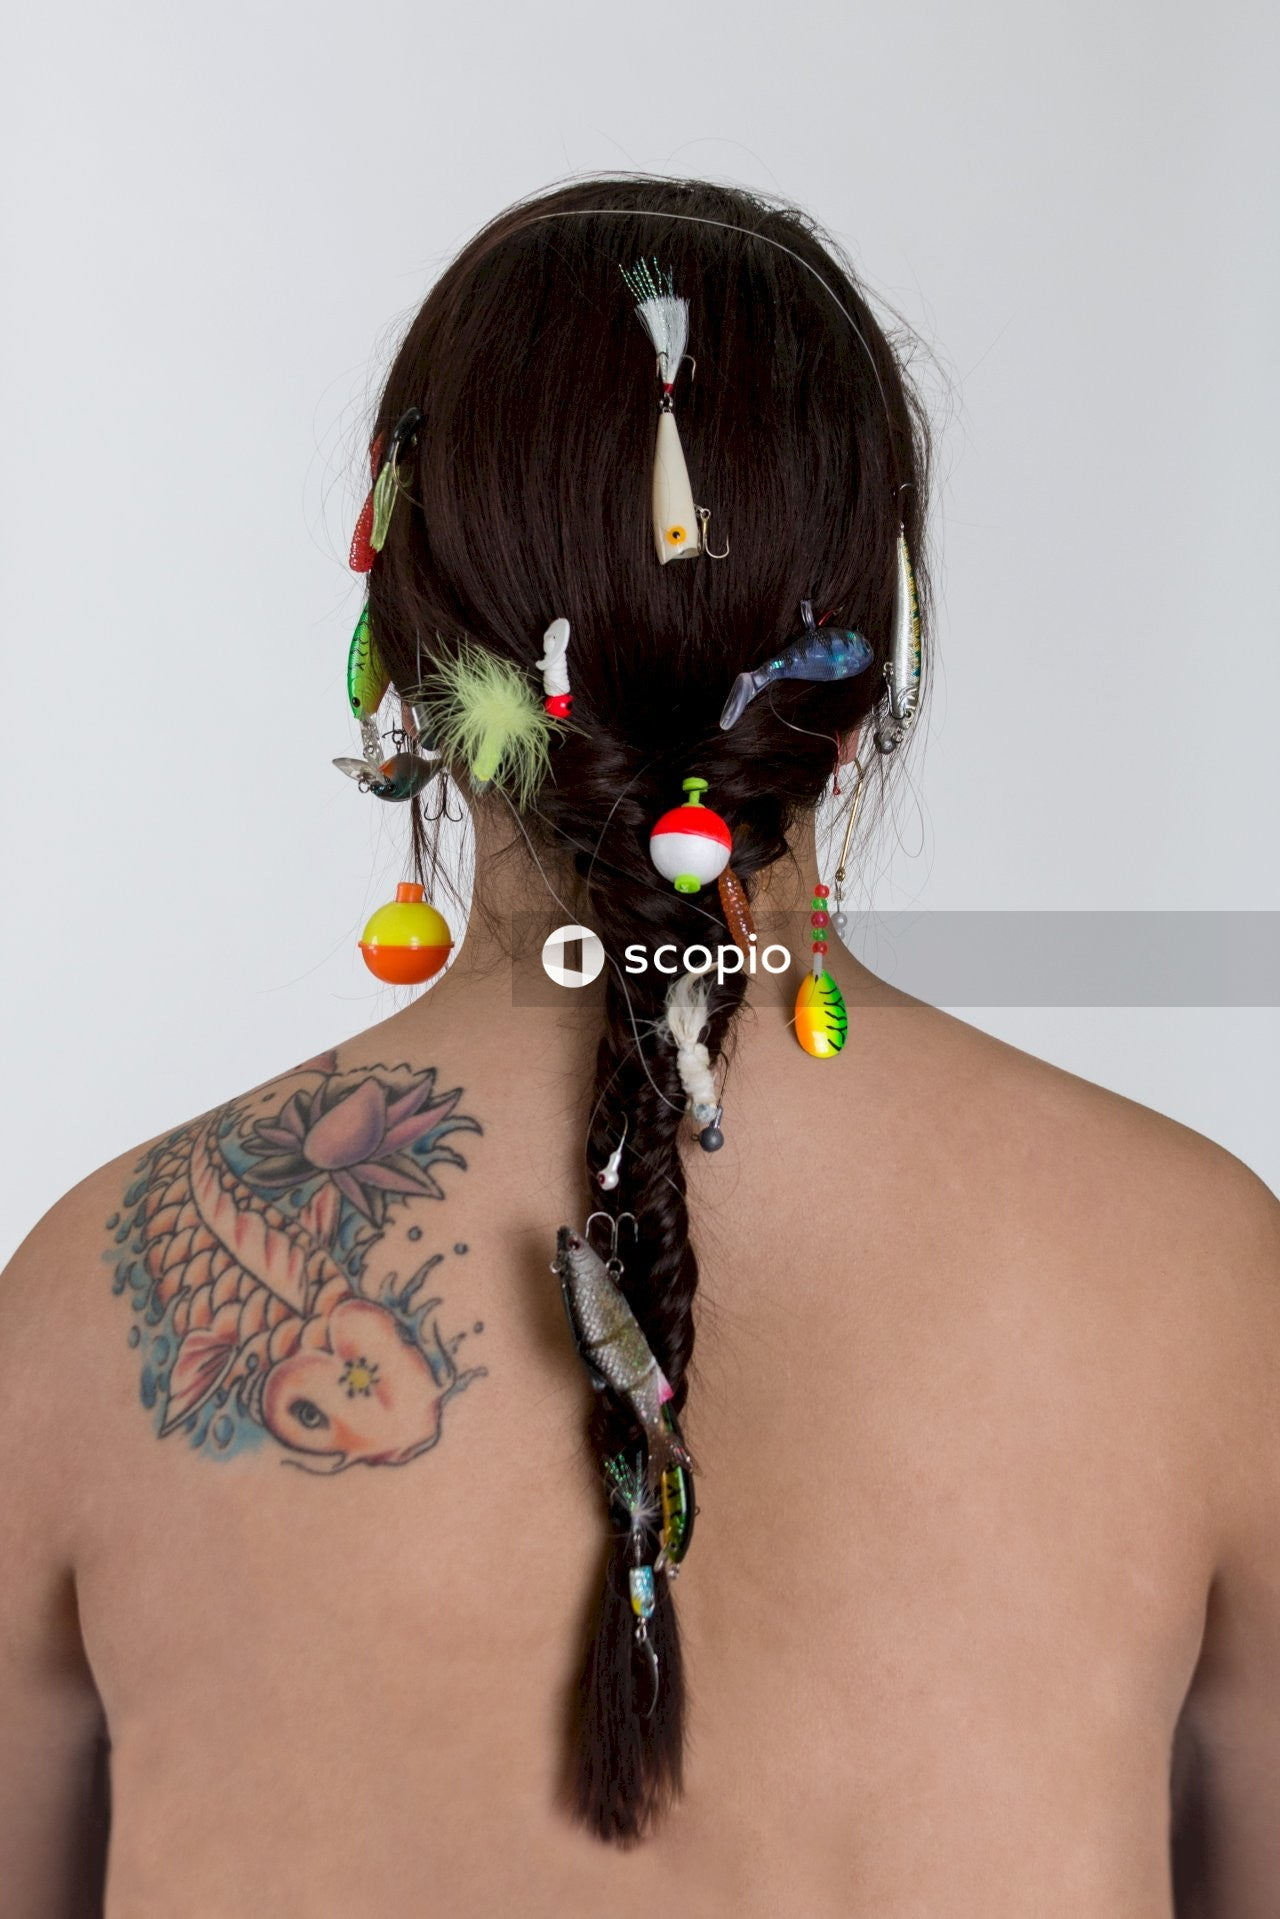 Women wearing hair accessory lot close-up